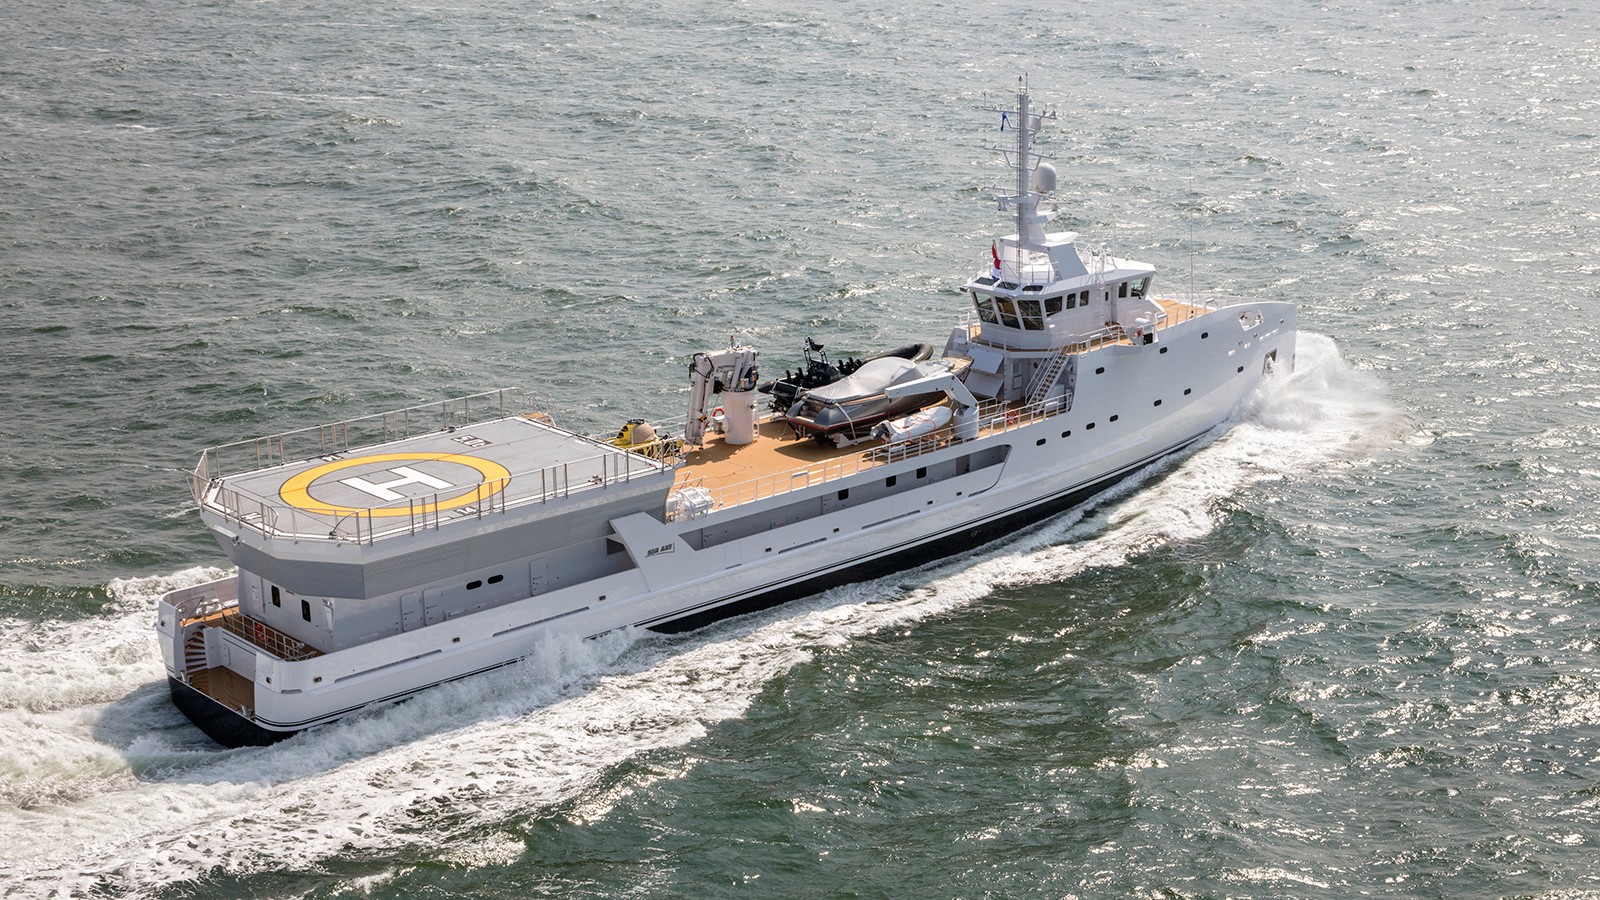 aerial-view-of-69-metre-damen-superyacht-support-vessel-game-changer